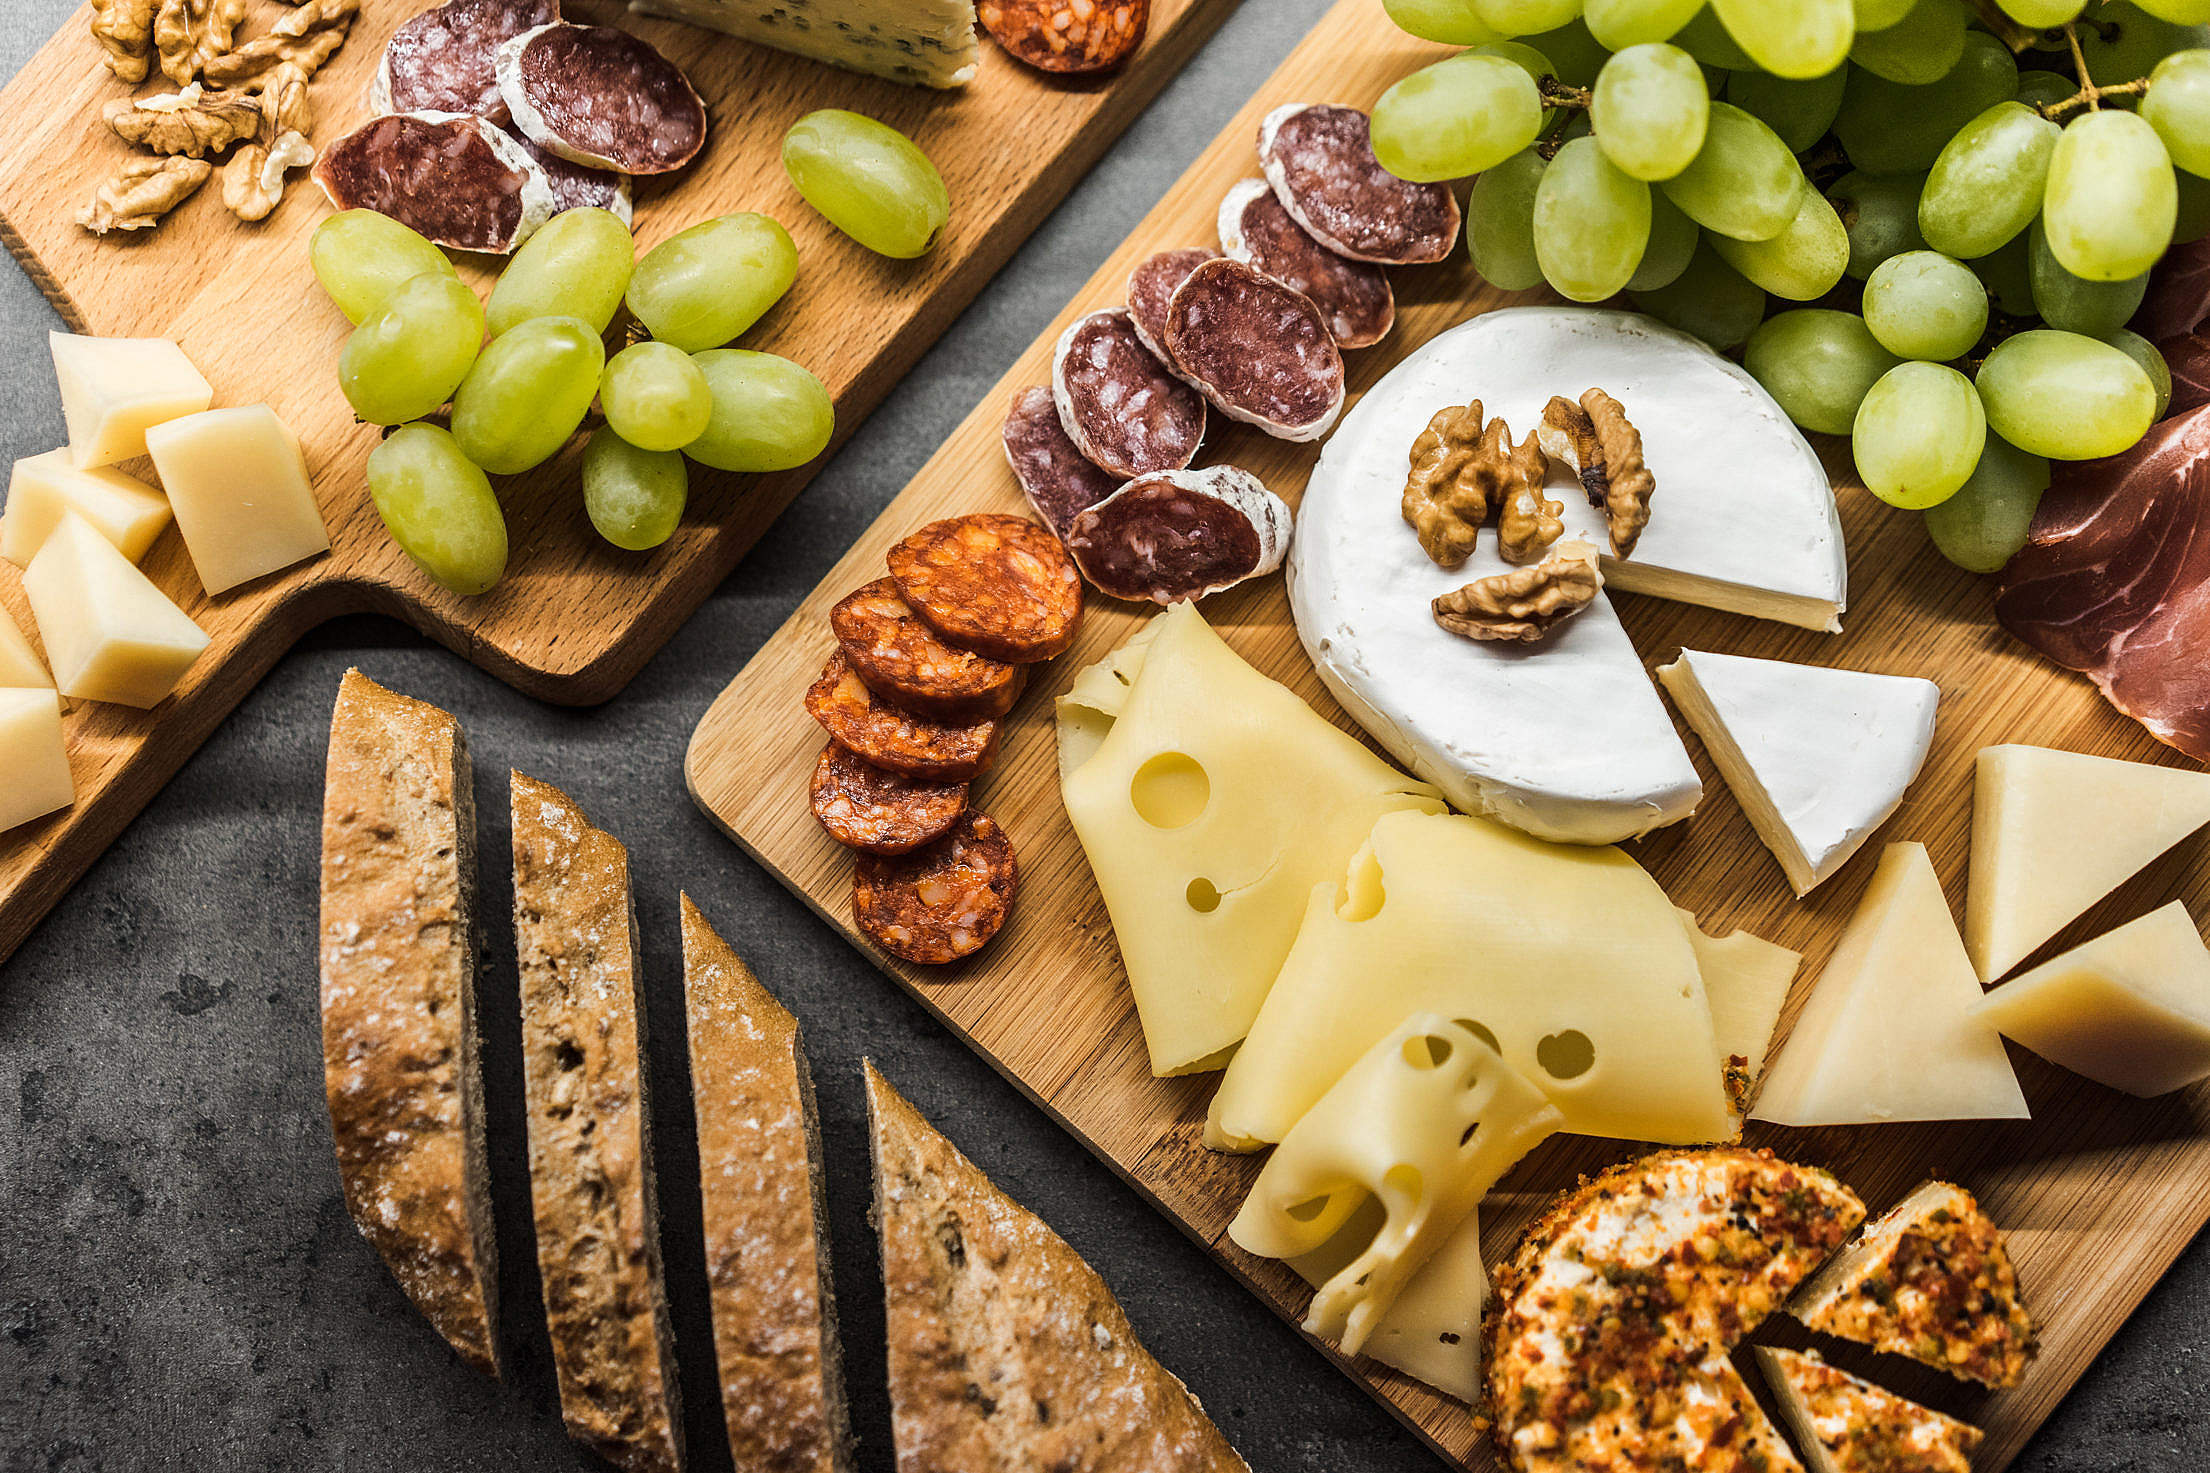 Delicious Gourmet Cheese Plate Free Photo